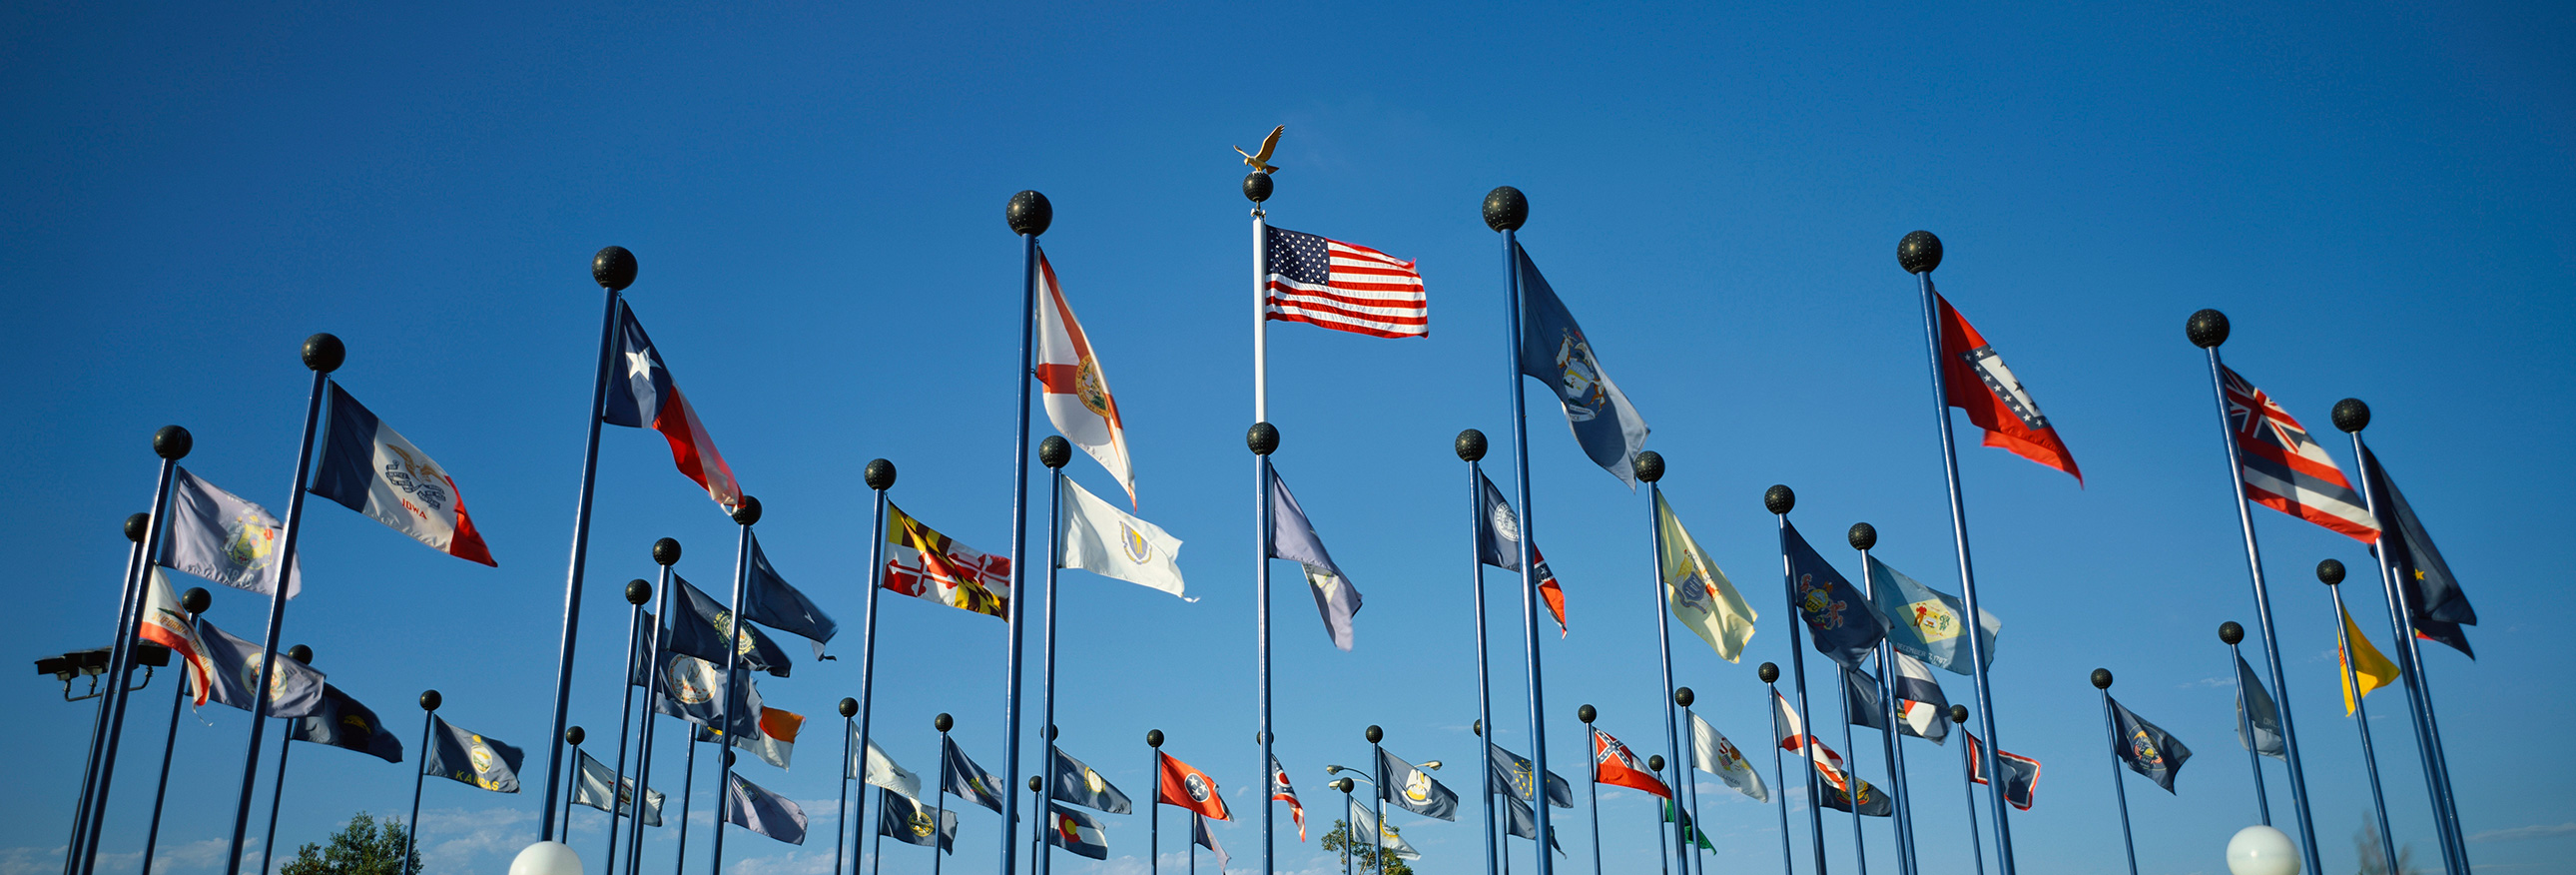 US state flags on flagpoles against a blue sky